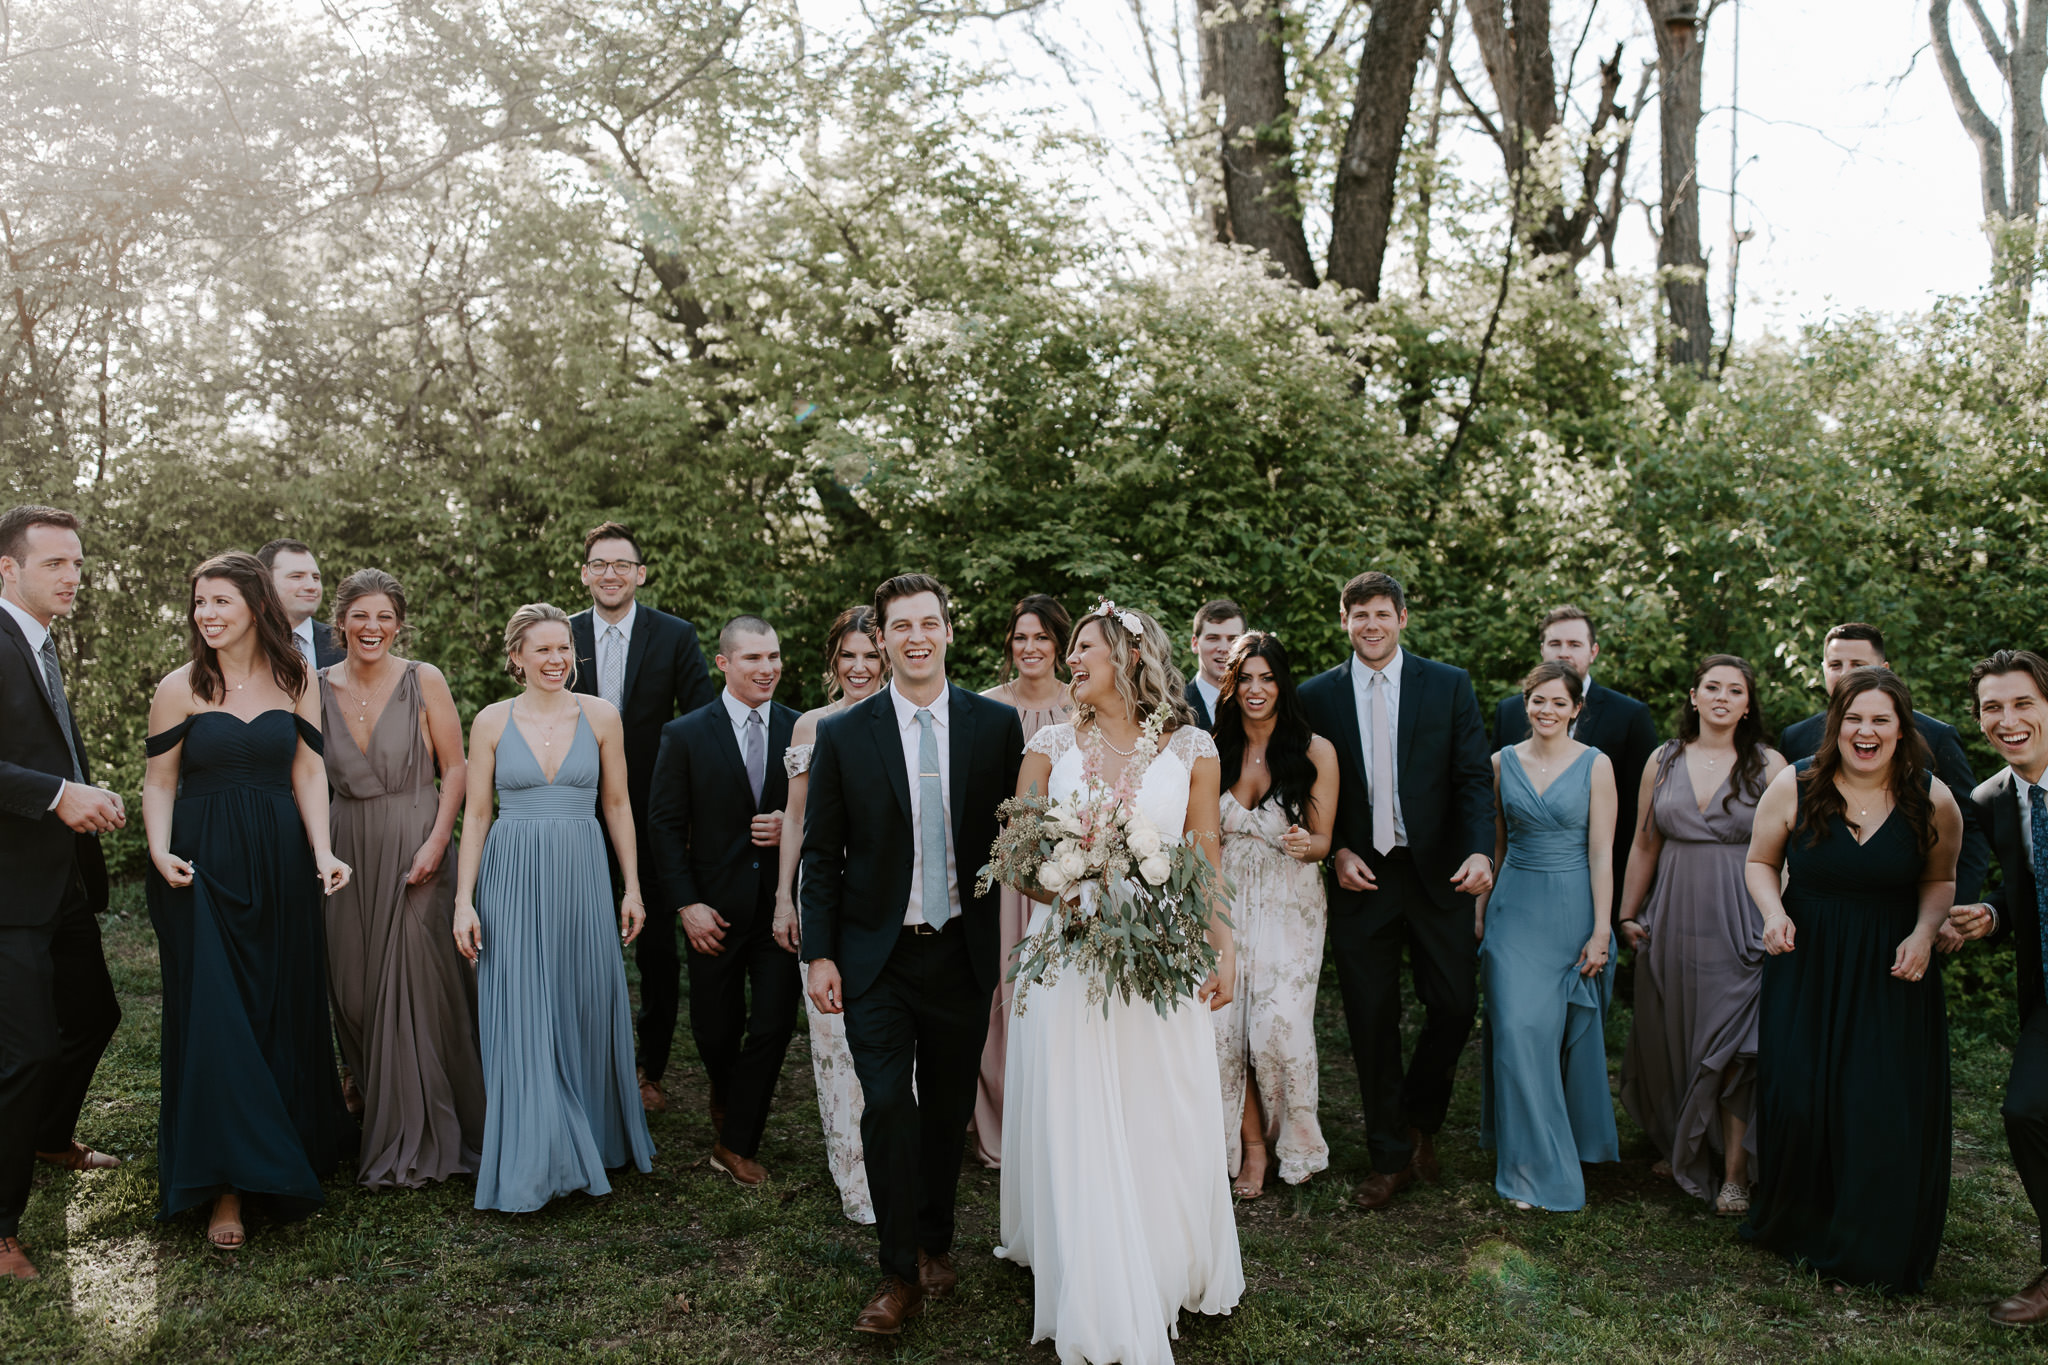 Wedding party portraits with pastel and spring colors, with mix matched bridesmaids dresses, at Cool springs house in Brentwood Tennessee